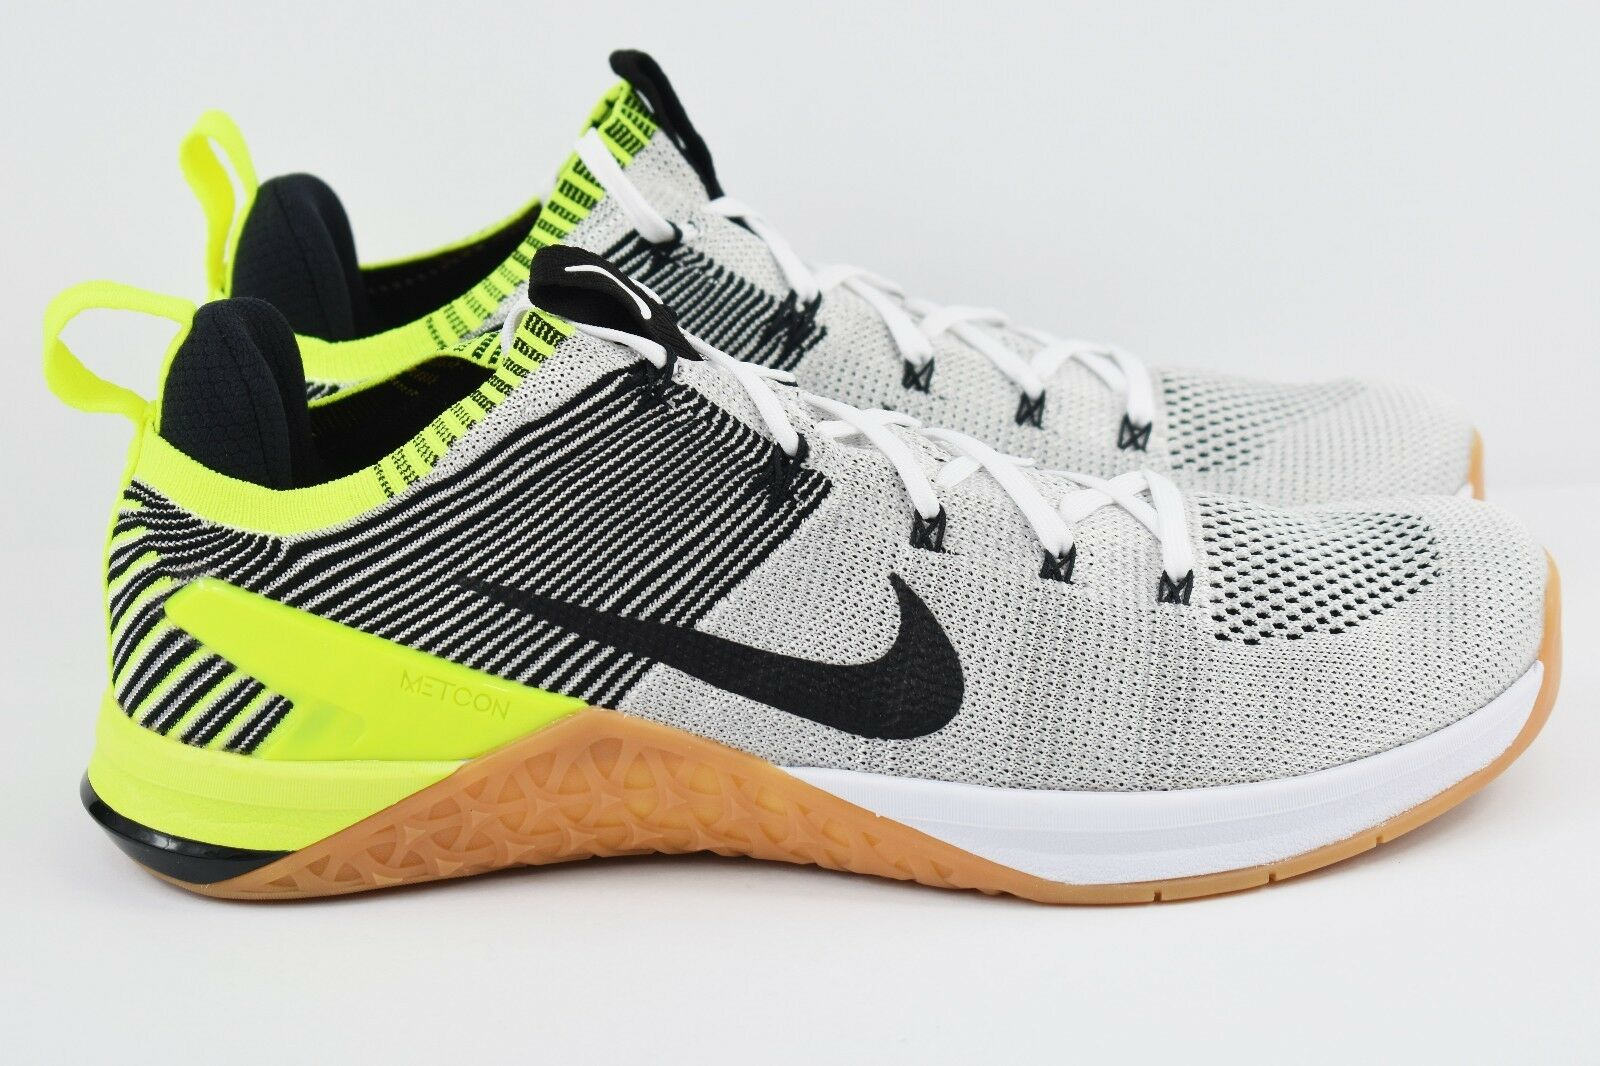 Nike Metcon DSX Flyknit 2 Mens Size 12 Shoes Grey Training Shoes 12 924423 107 Rare e9001a